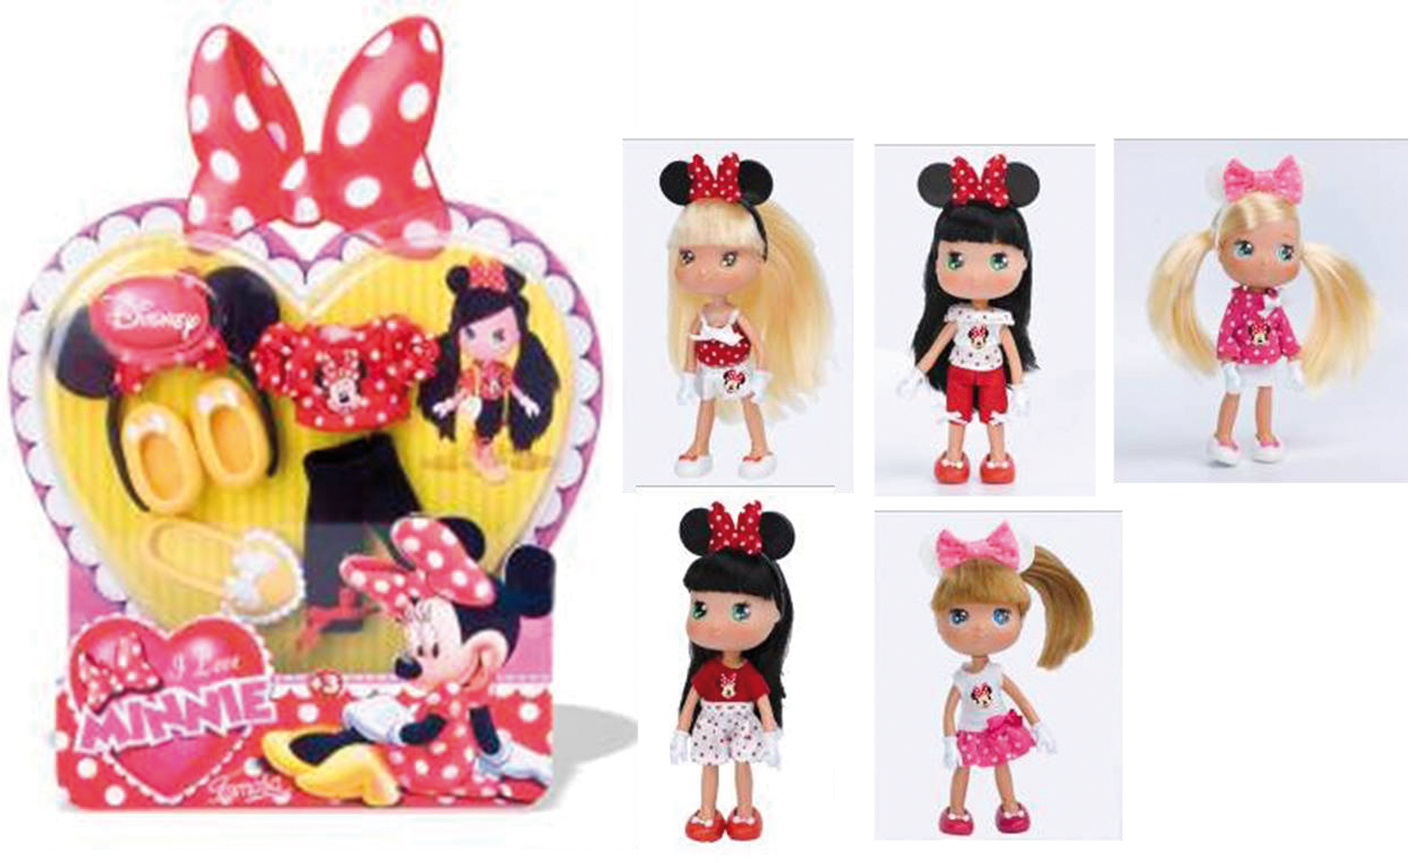 VESTITI MODA I LOVE MINNIE